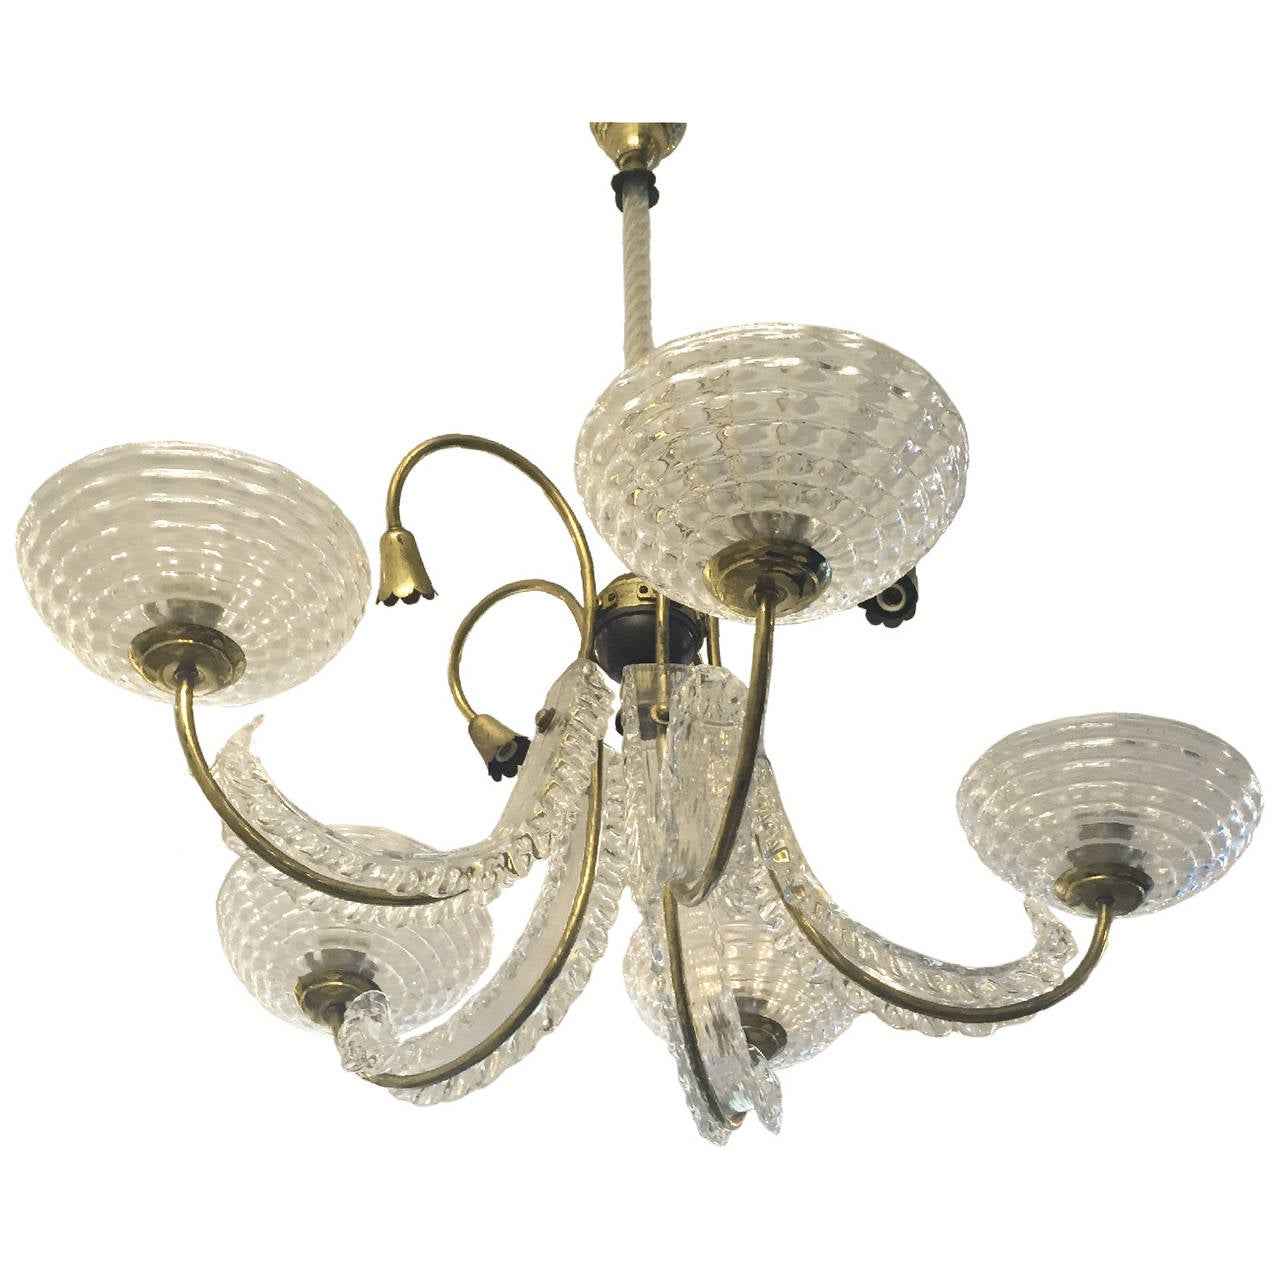 glass octopus chandelier squid italian 1940s barovier and toso chandelier having one drop light five curved arms top brass glass chandelier by for sale at 1stdibs